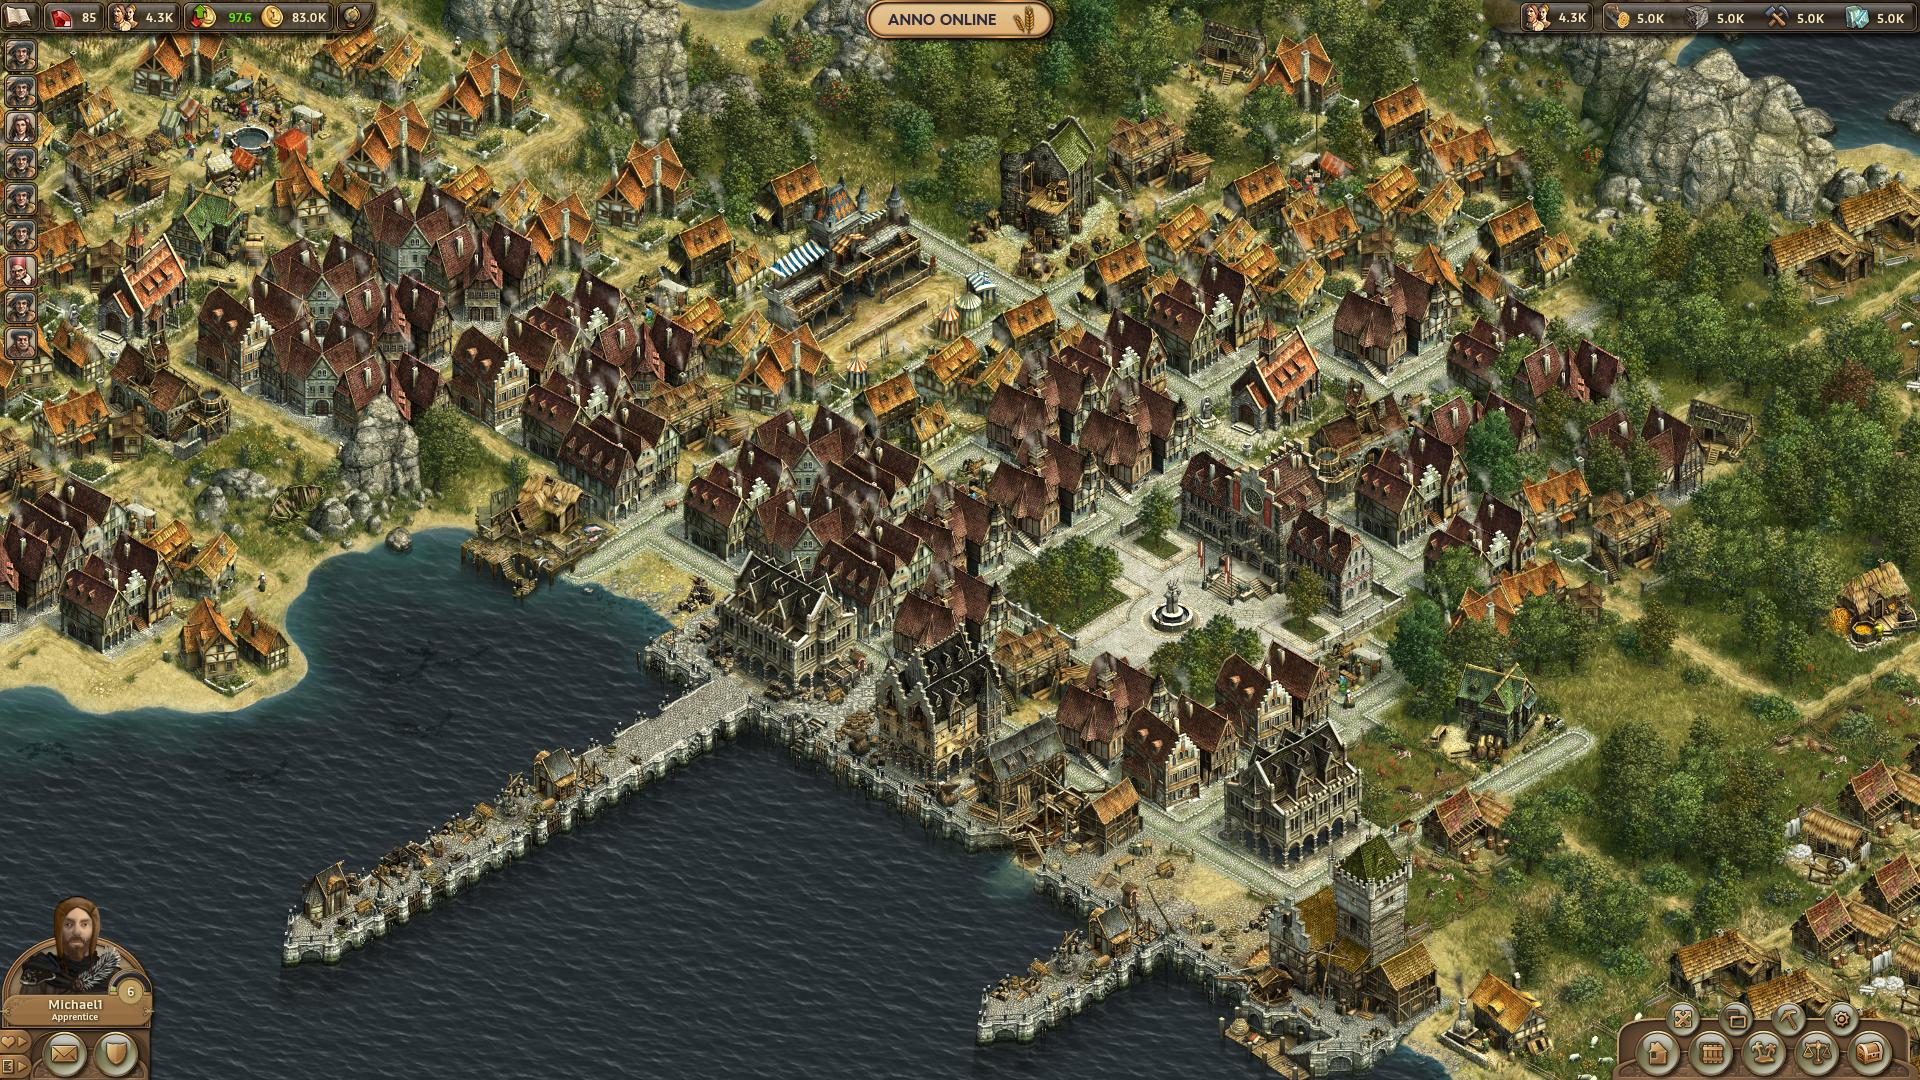 Browser Based Mmo Free Empire Building